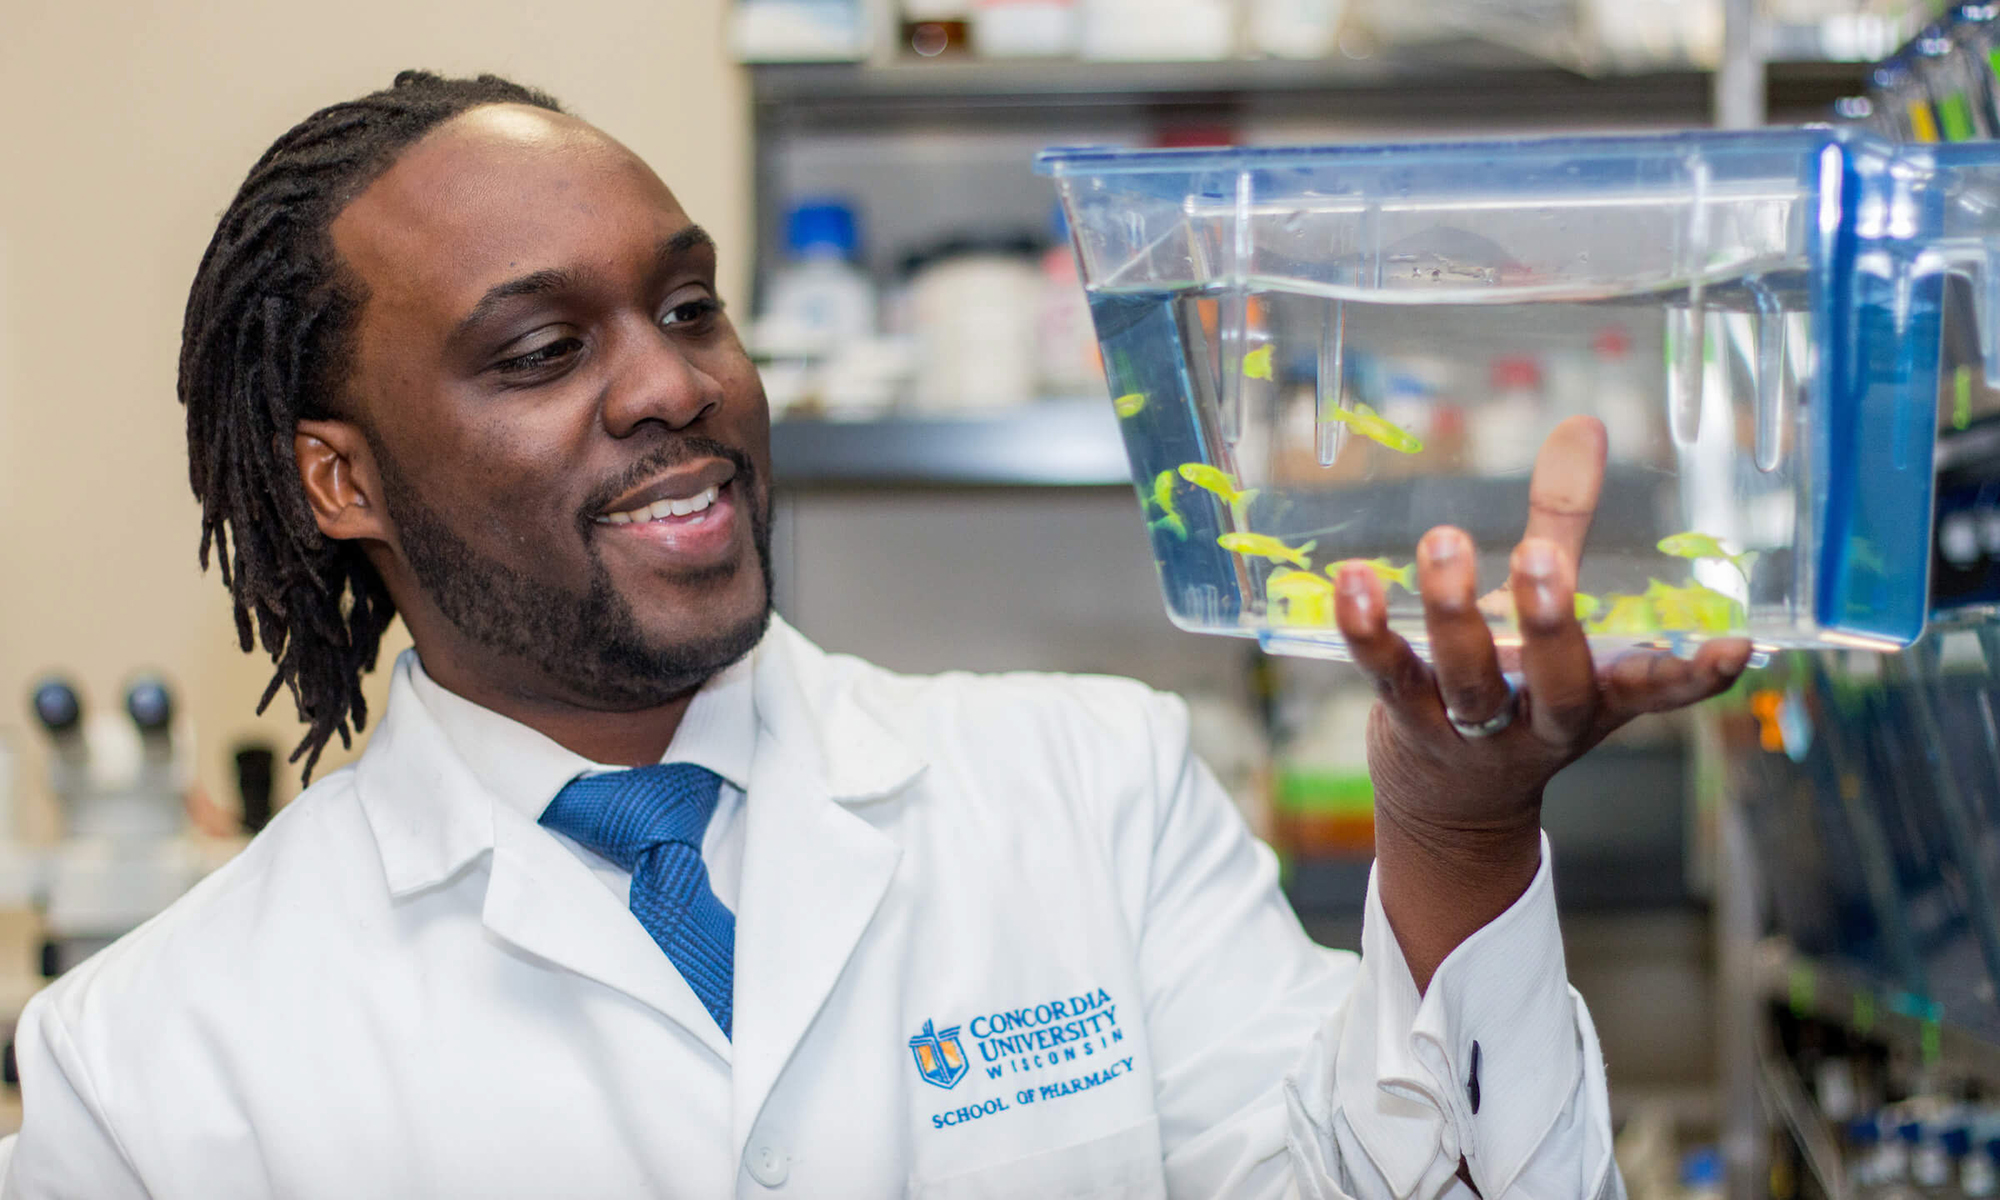 Kwadwo Owusu-Ofori, the first to be accepted into CUW's first pharmacy fellowship program, examines some zebrafish in Concordia's School of Pharmacy.